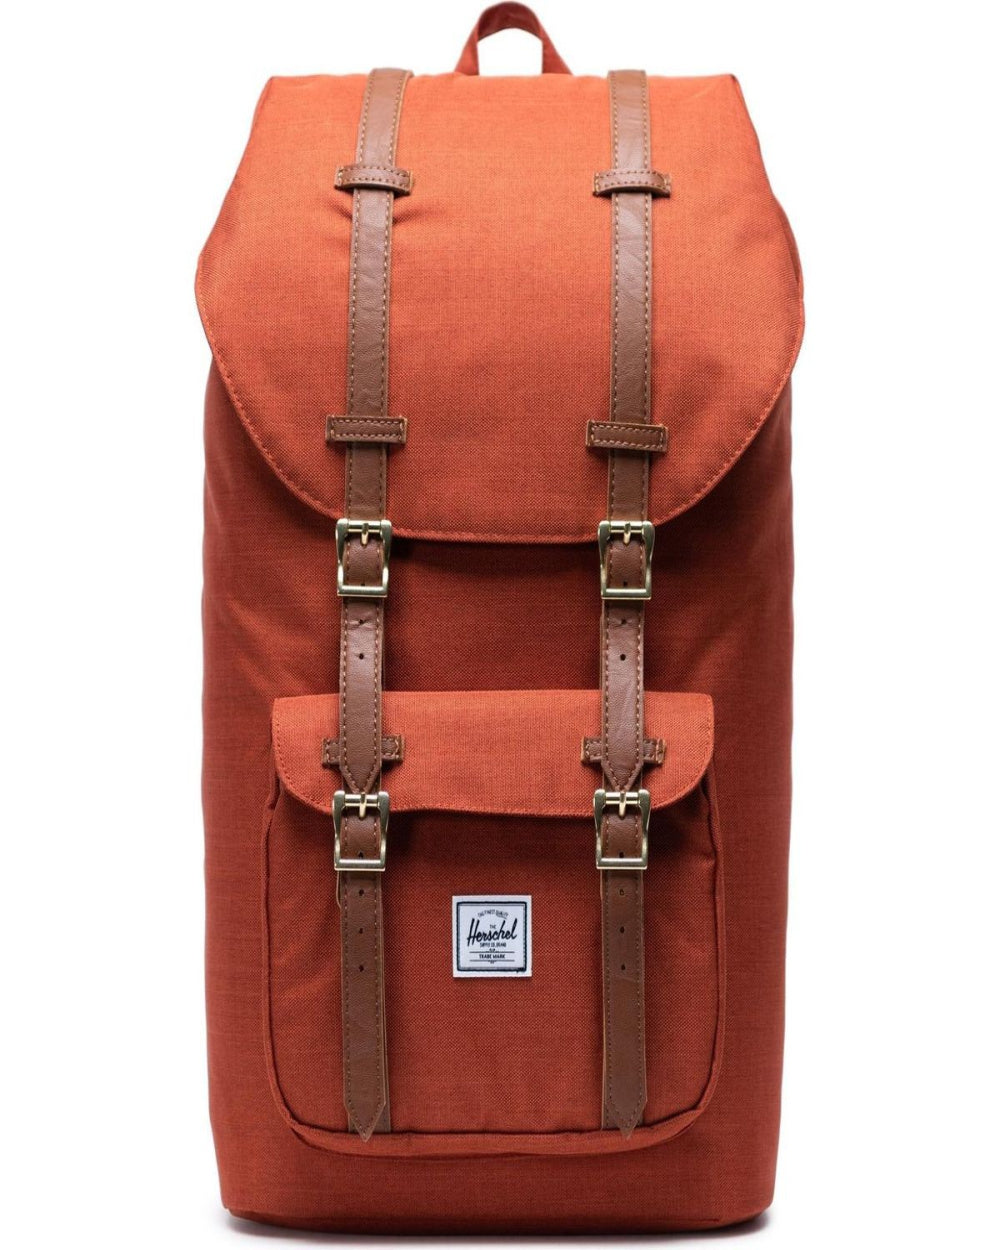 HERSCHEL - LITTLE AMERICA BACKPACK IN PICANTE CROSSHATCH